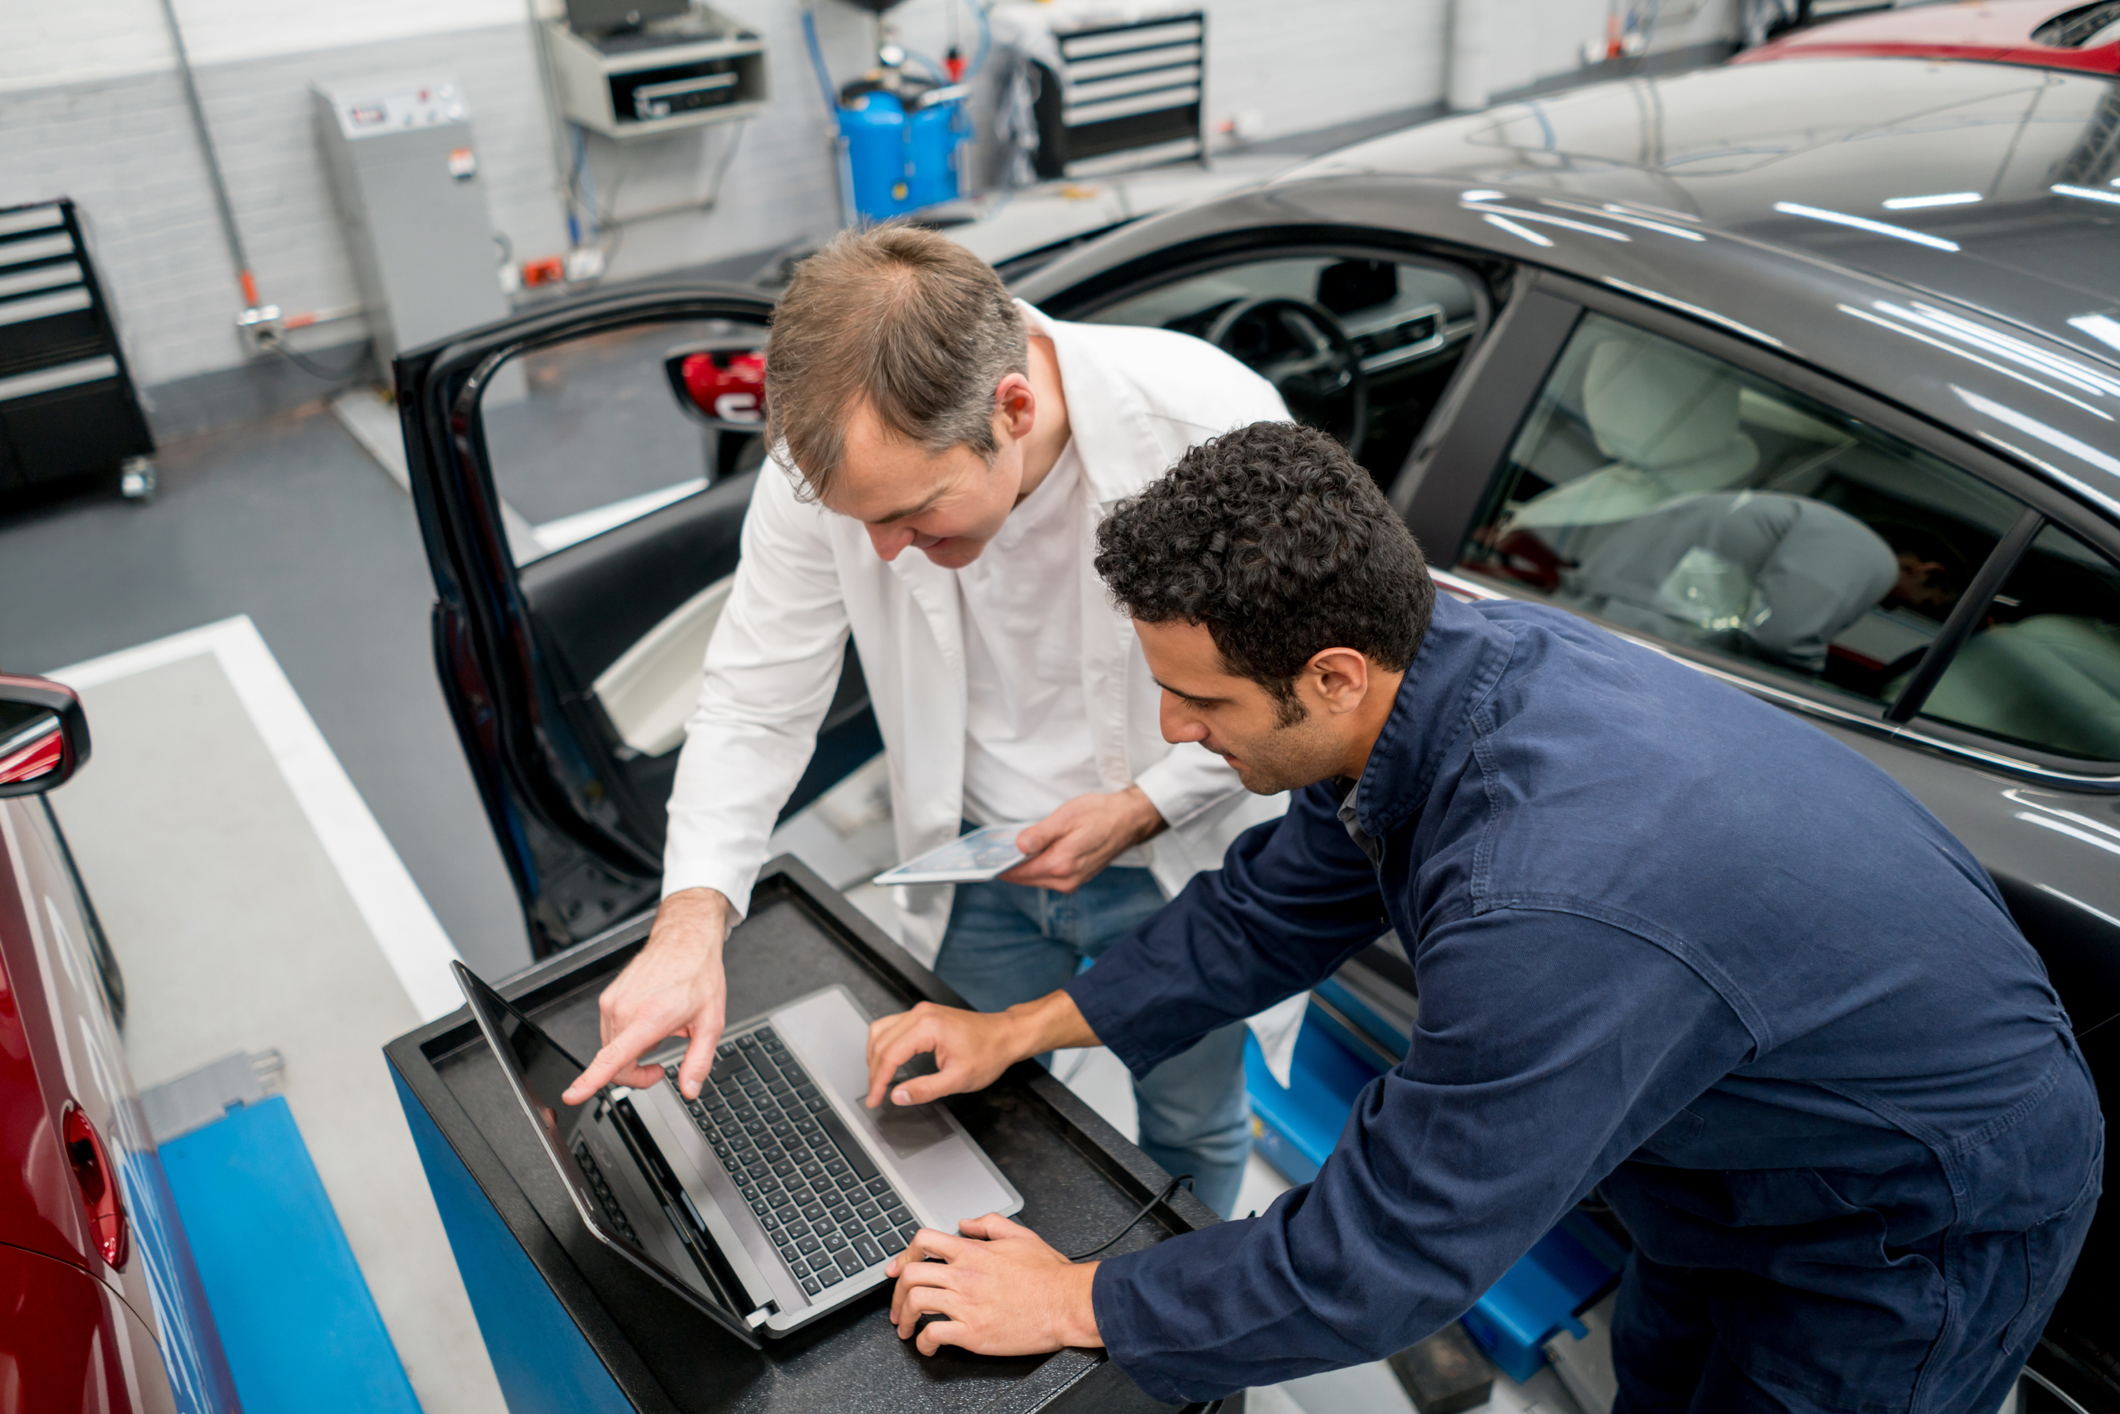 Mechanics-working-together-at-an-auto-repair-shop-using-a-computer-824981492_2123x1416 (1).jpeg